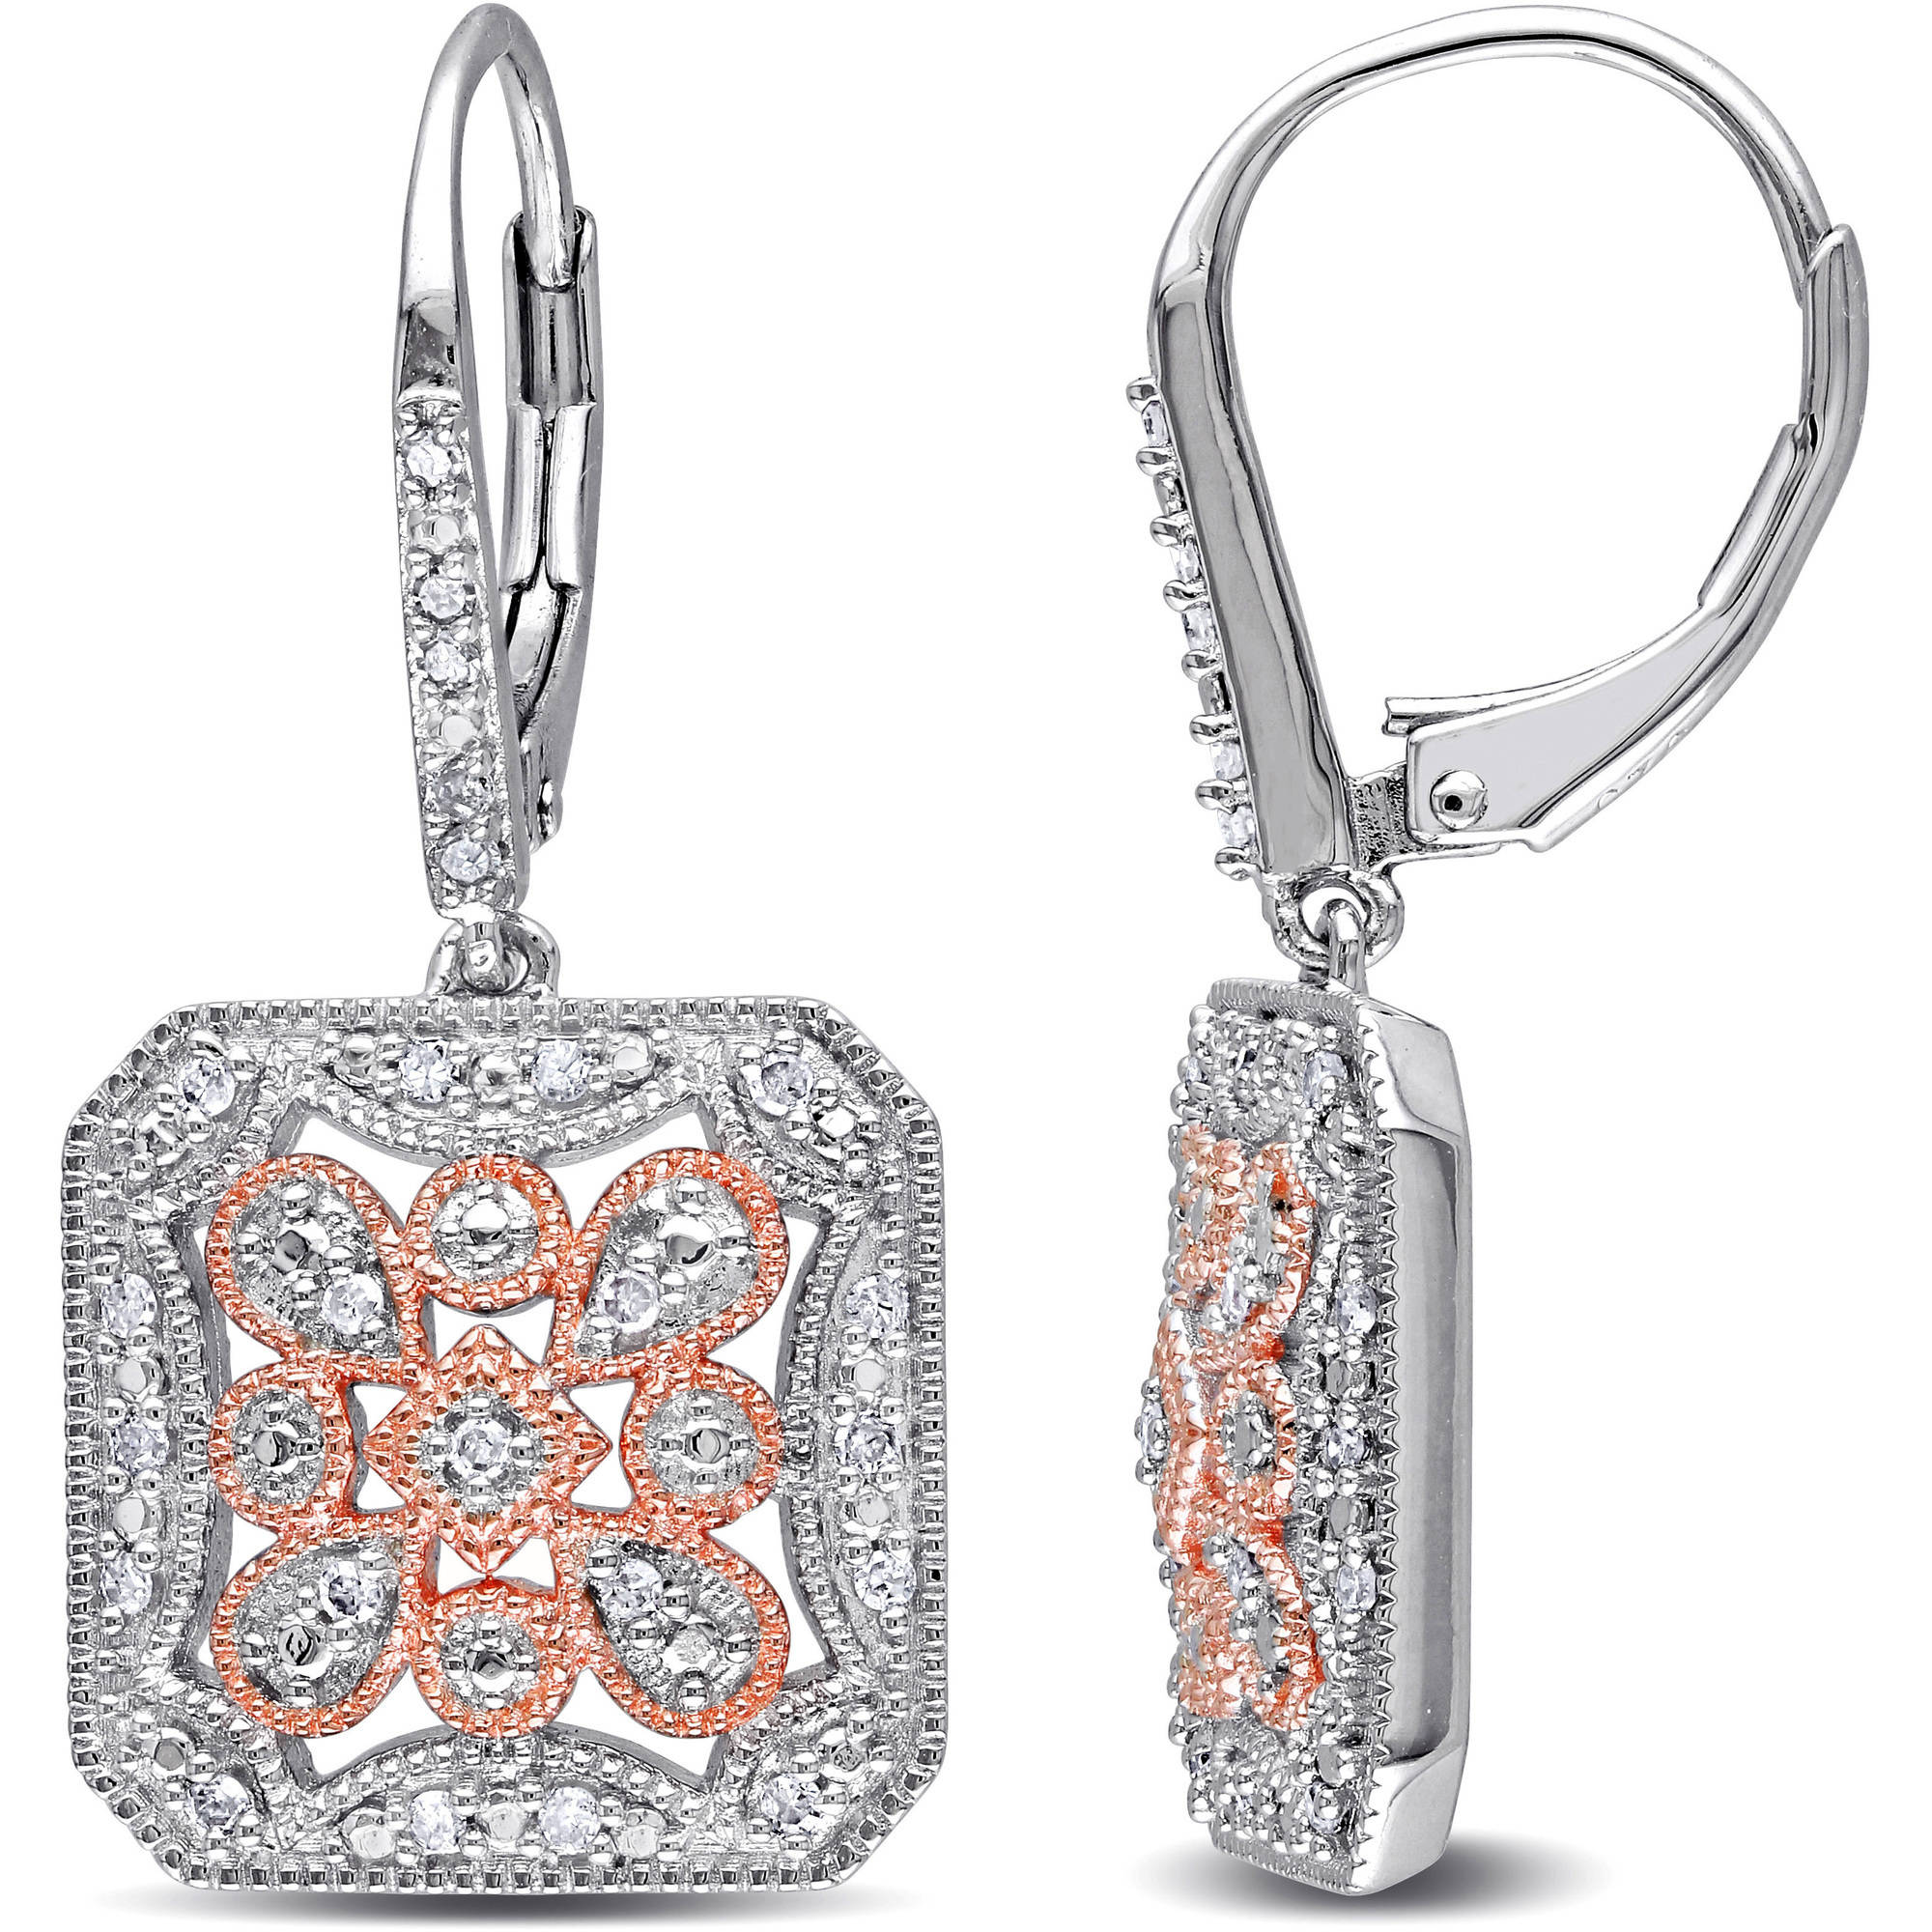 Miabella 1/4 Carat Diamond 2-Tone Sterling Silver Leverback Earrings